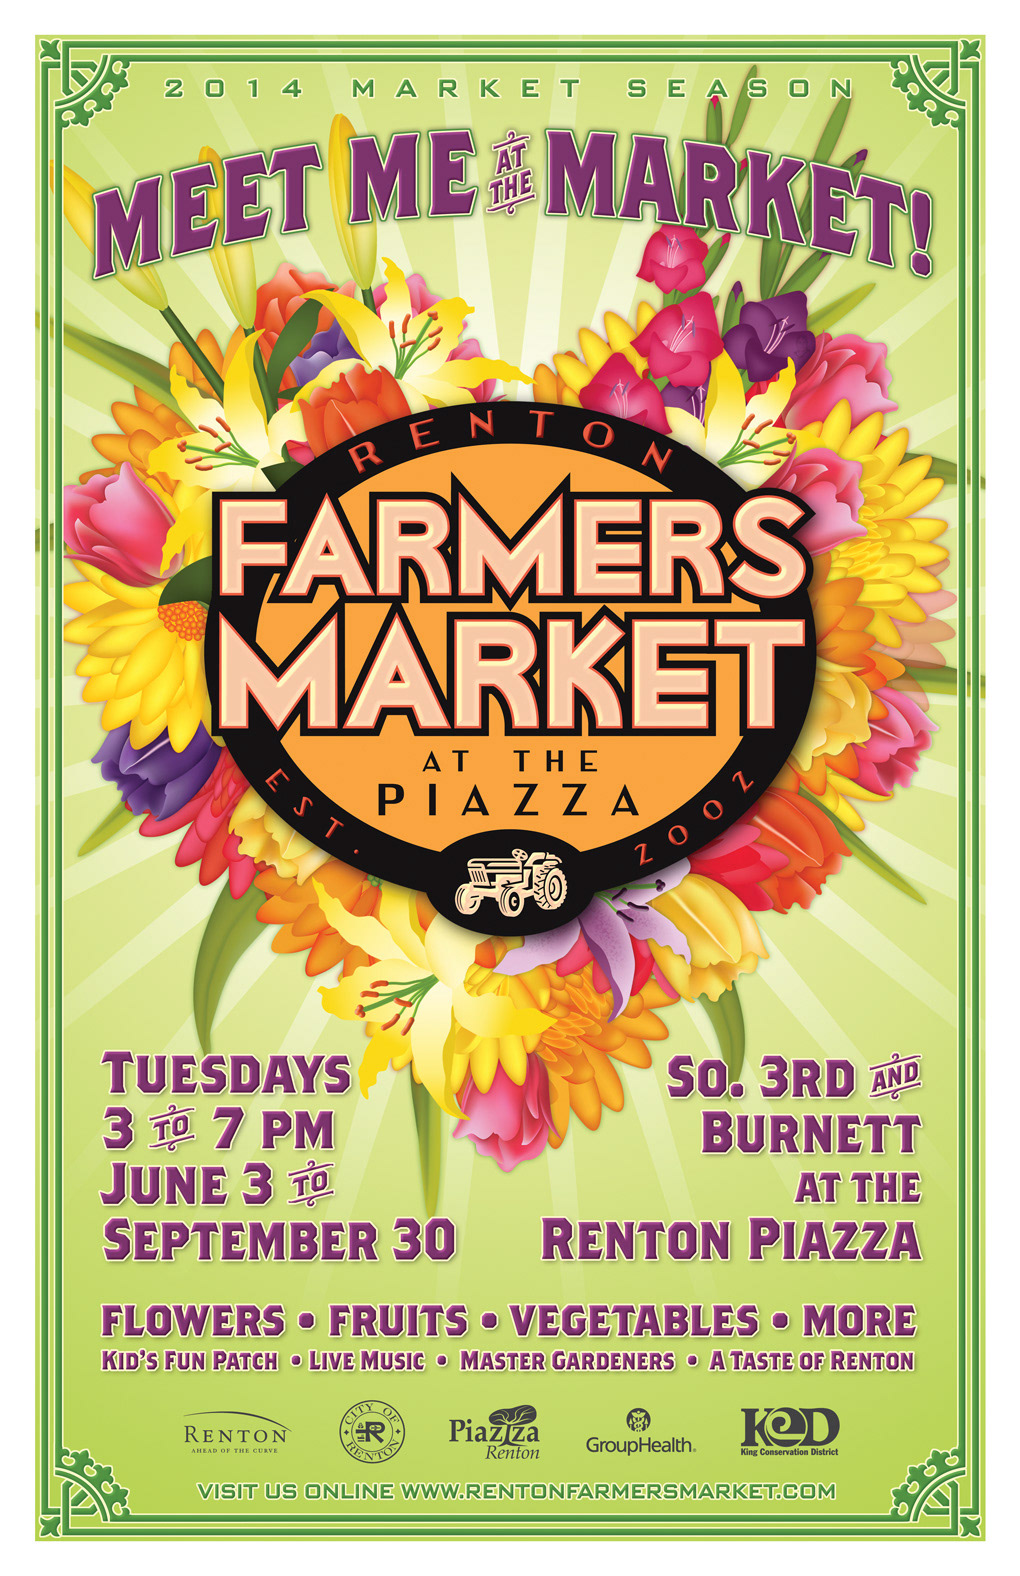 Mark Hoben - Senior Graphic Designer - Farmers Market Posters